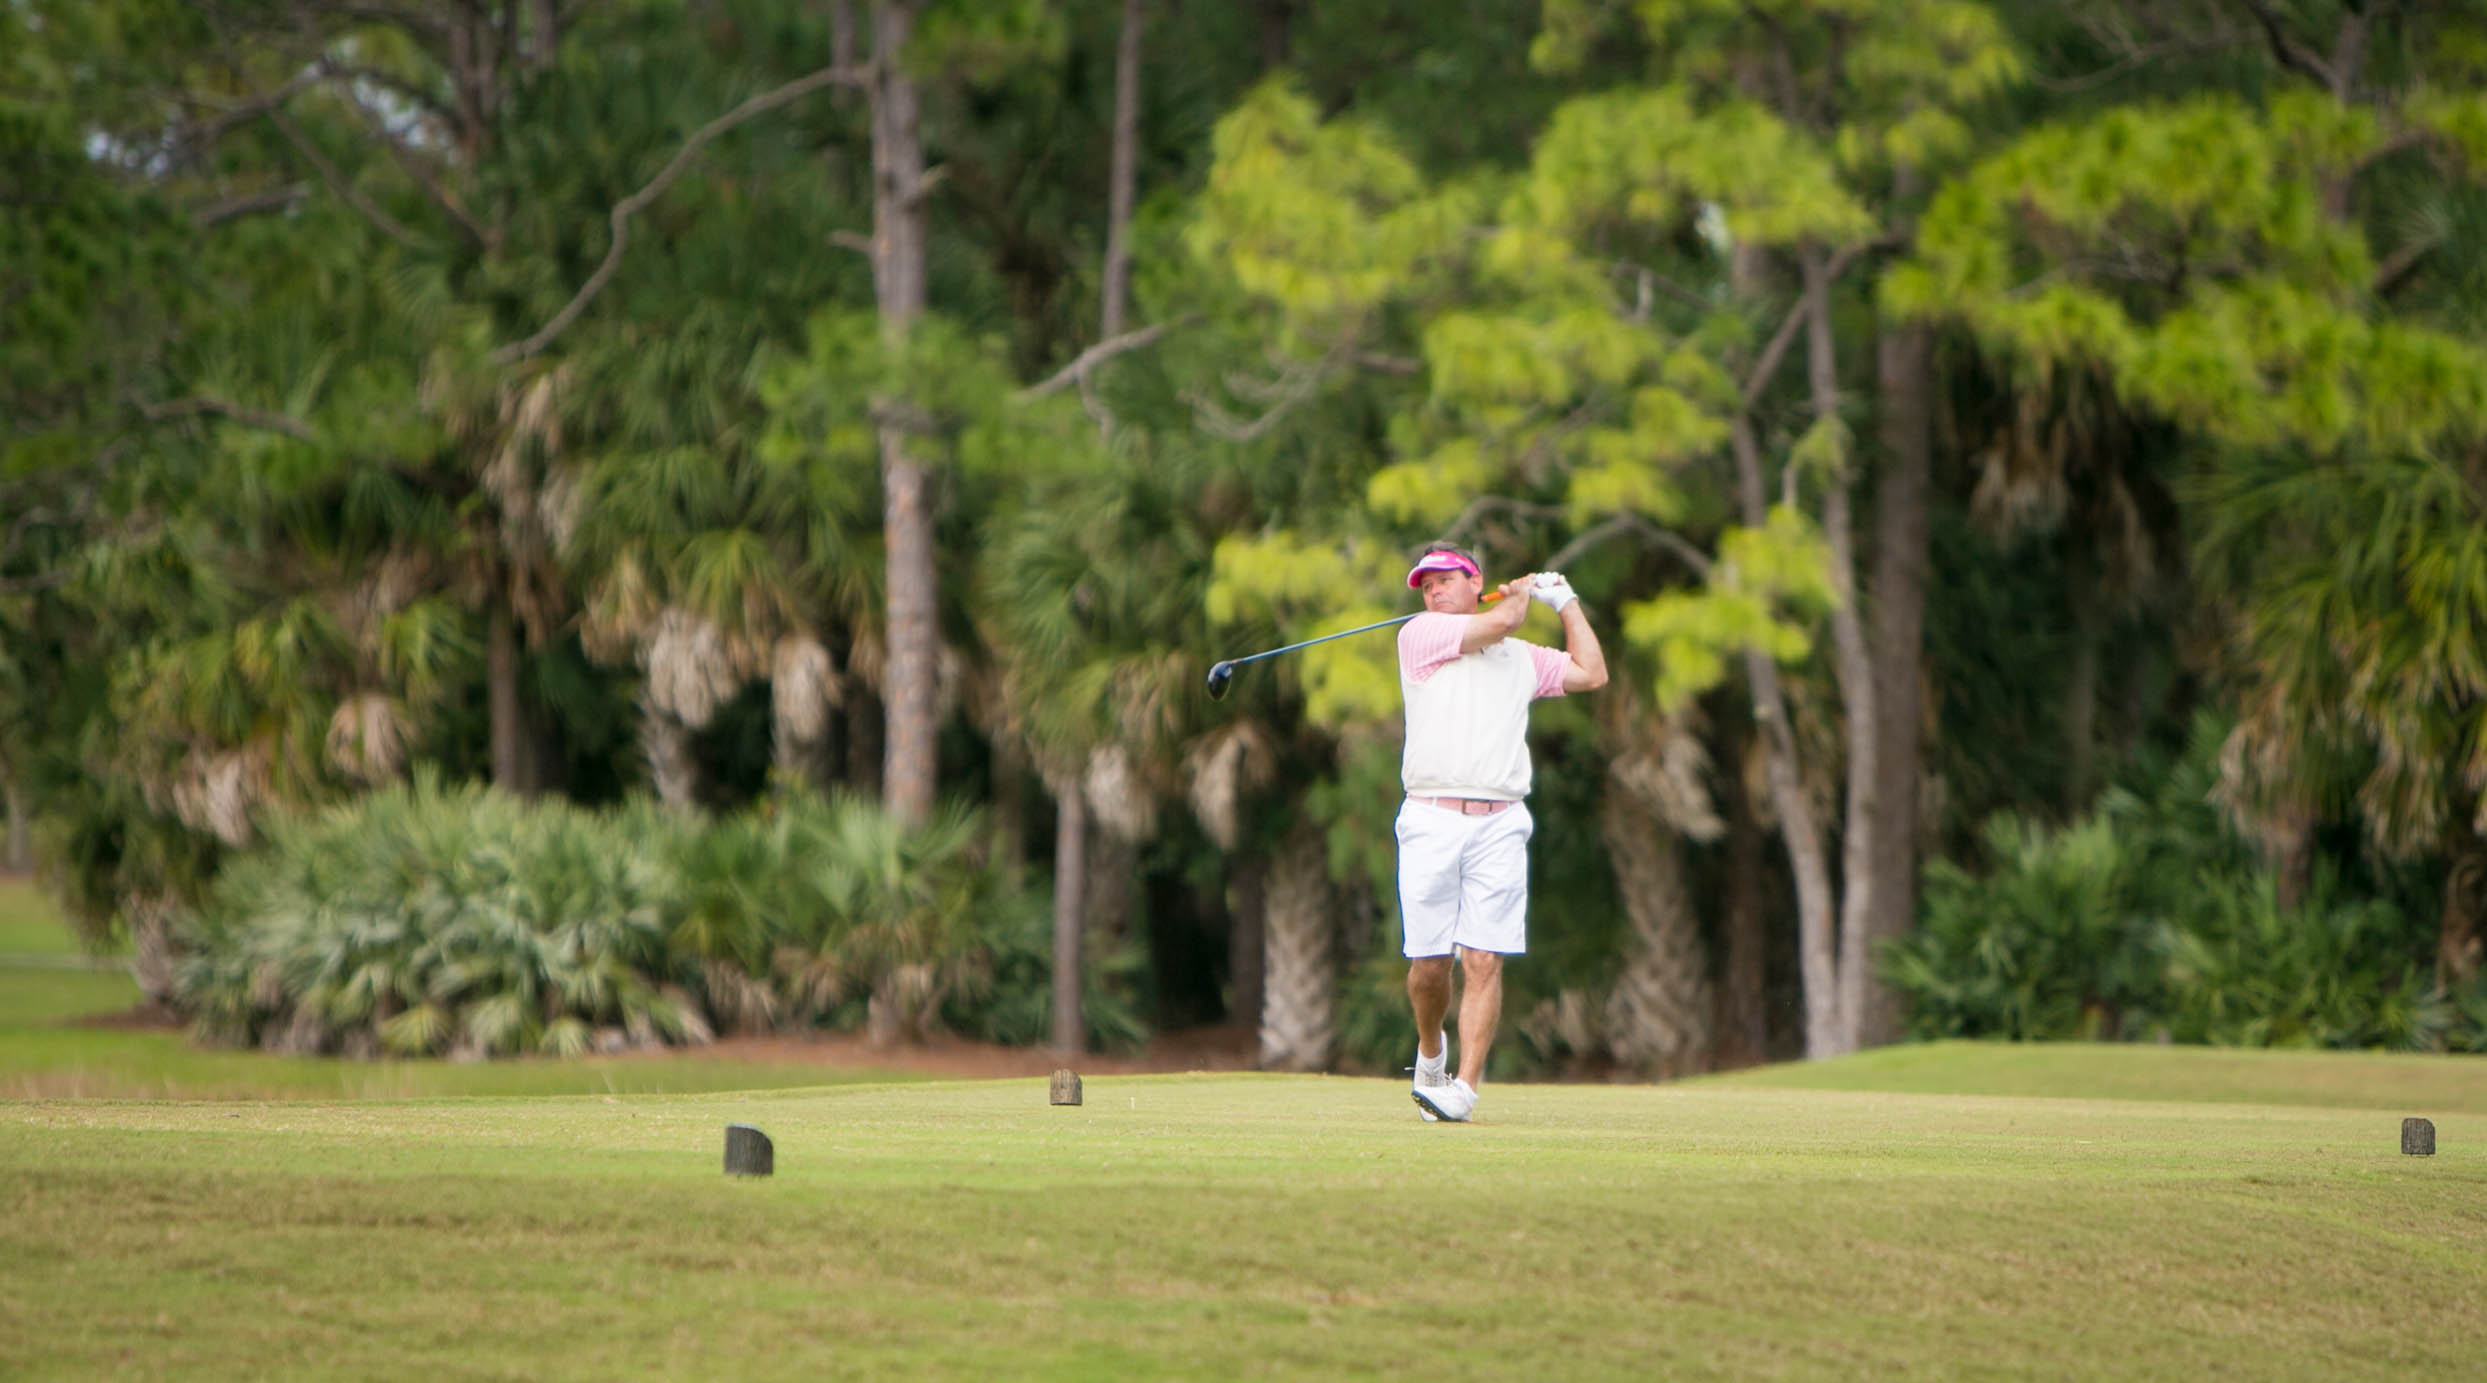 COUNTRY CLUB IN GULF STREAM FLORIDA - http://preserveatironhorse.com/country-club-gulf-stream-florida/